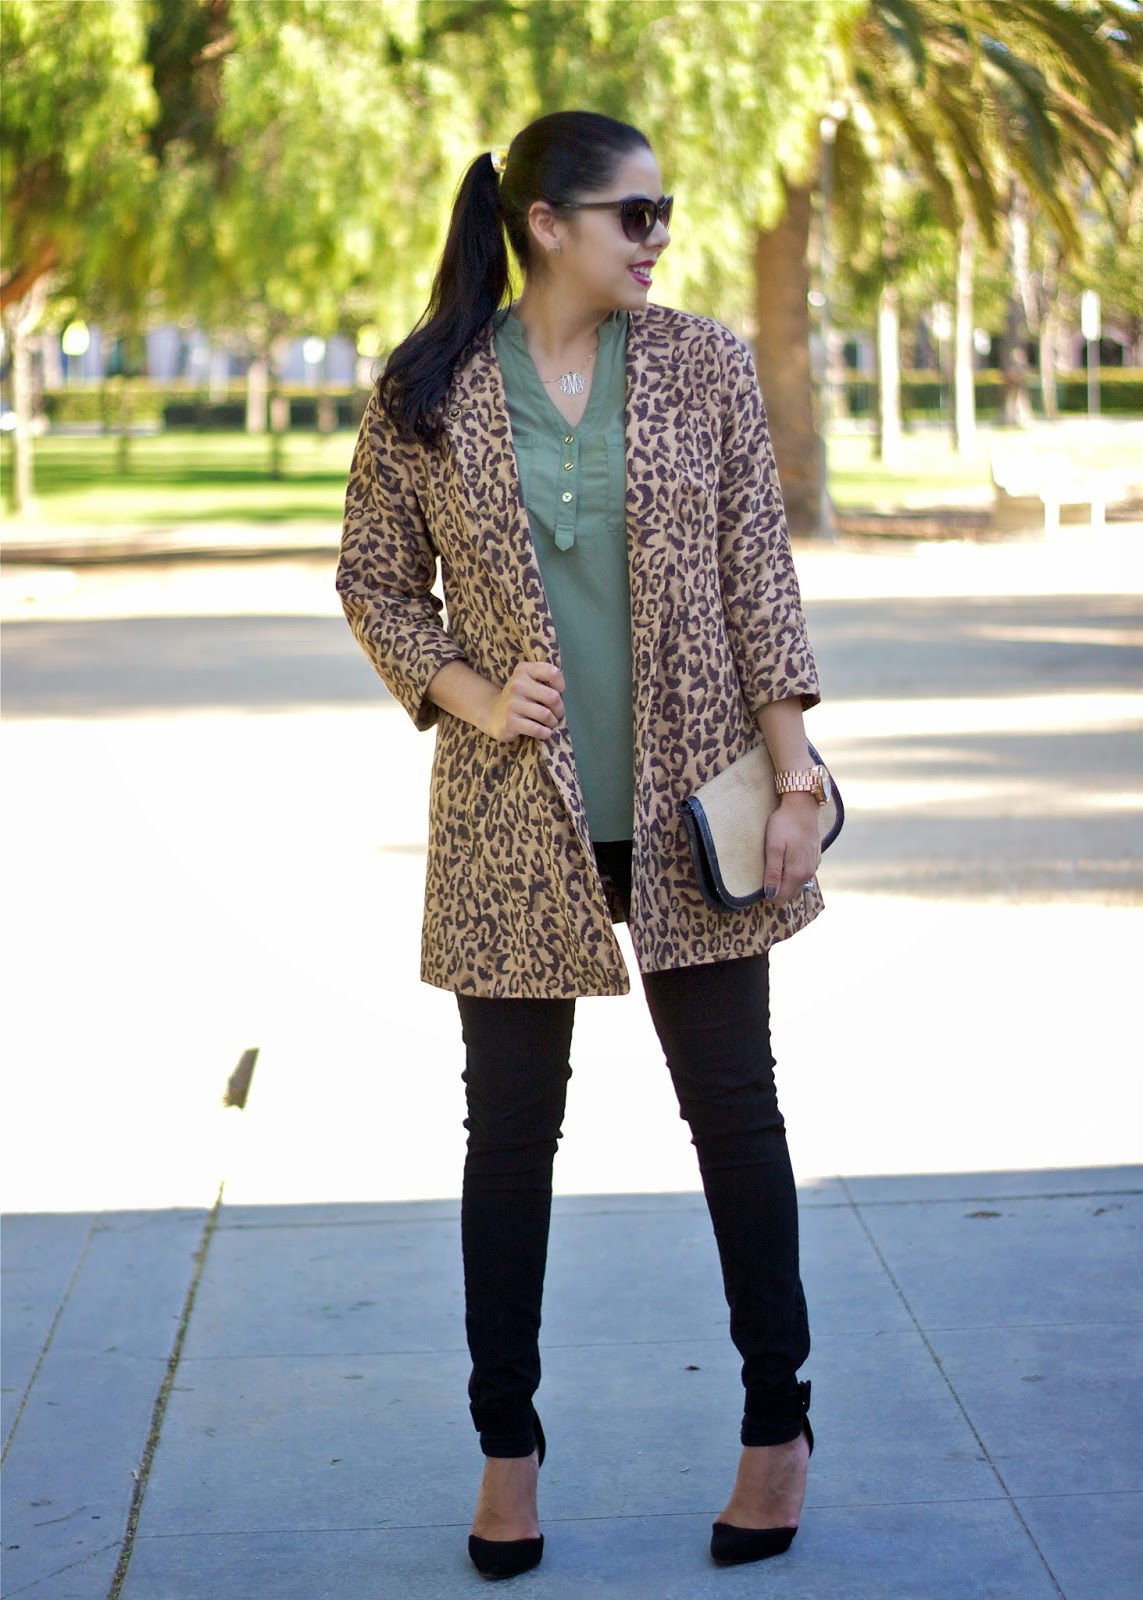 olive button up, how to wear olive in fall, green top with leopard, olive with leopard, burgundy with leopard, fashion time in the city, fashion week sd, fwsd